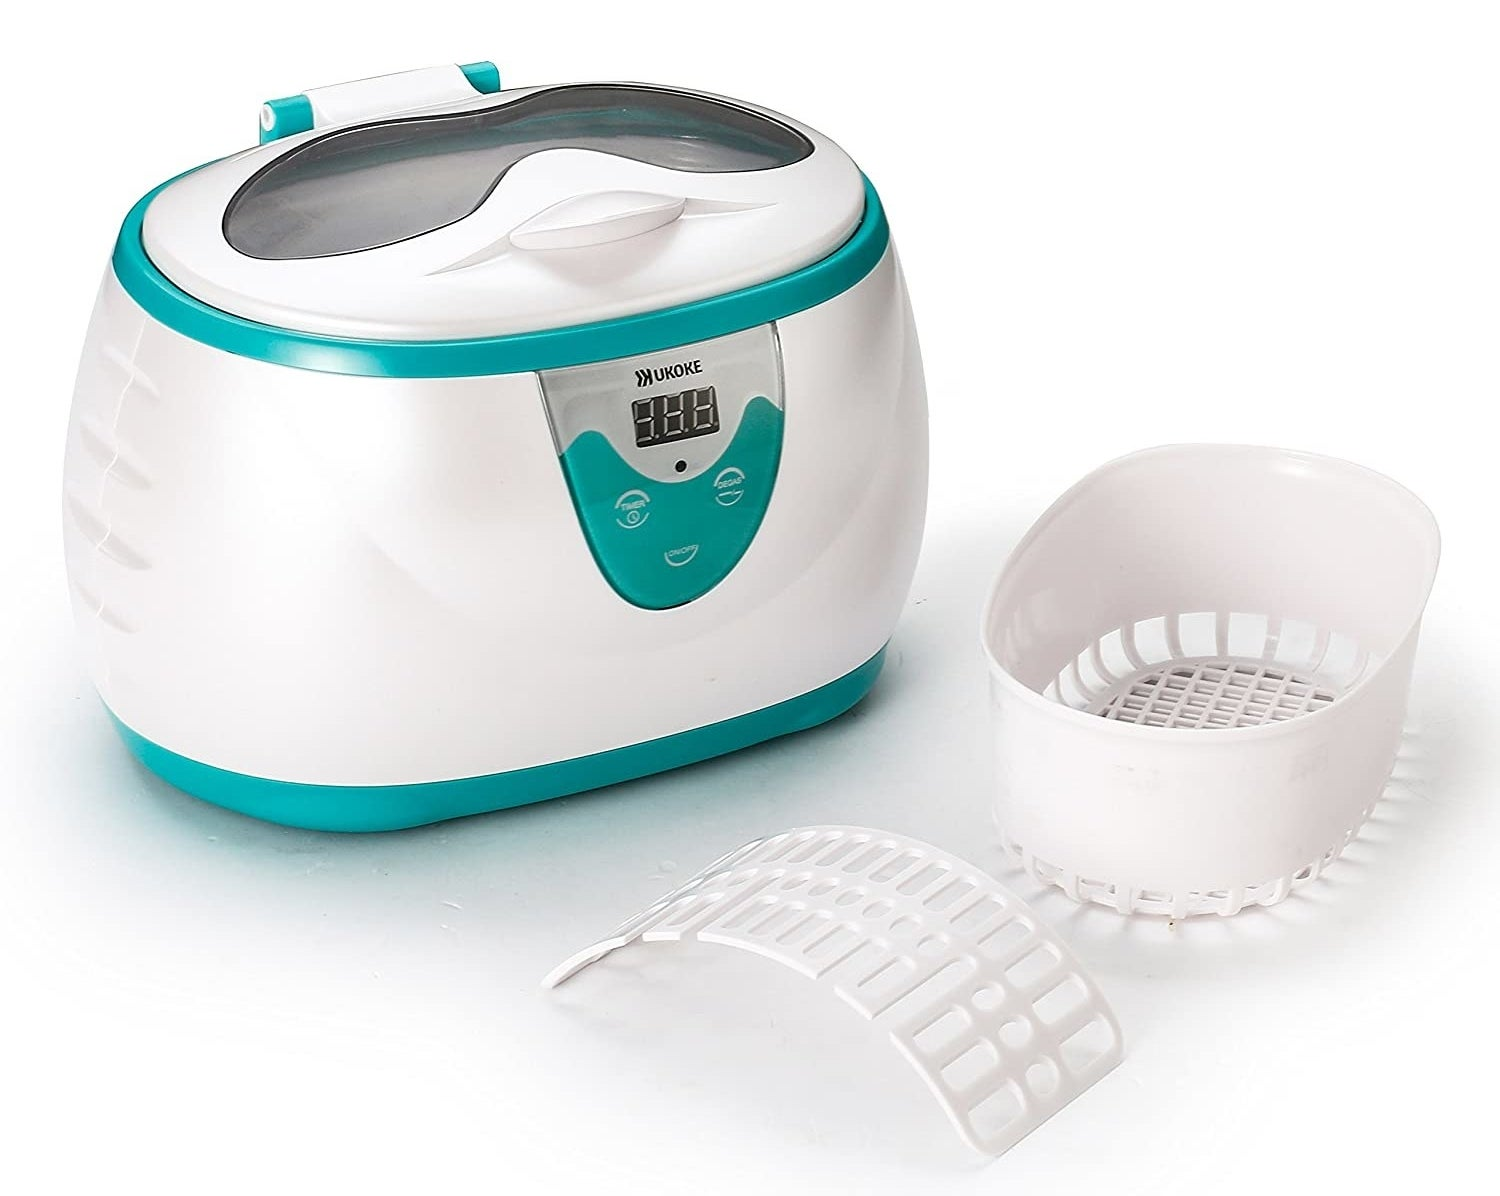 The compact cleaning machine with button controls